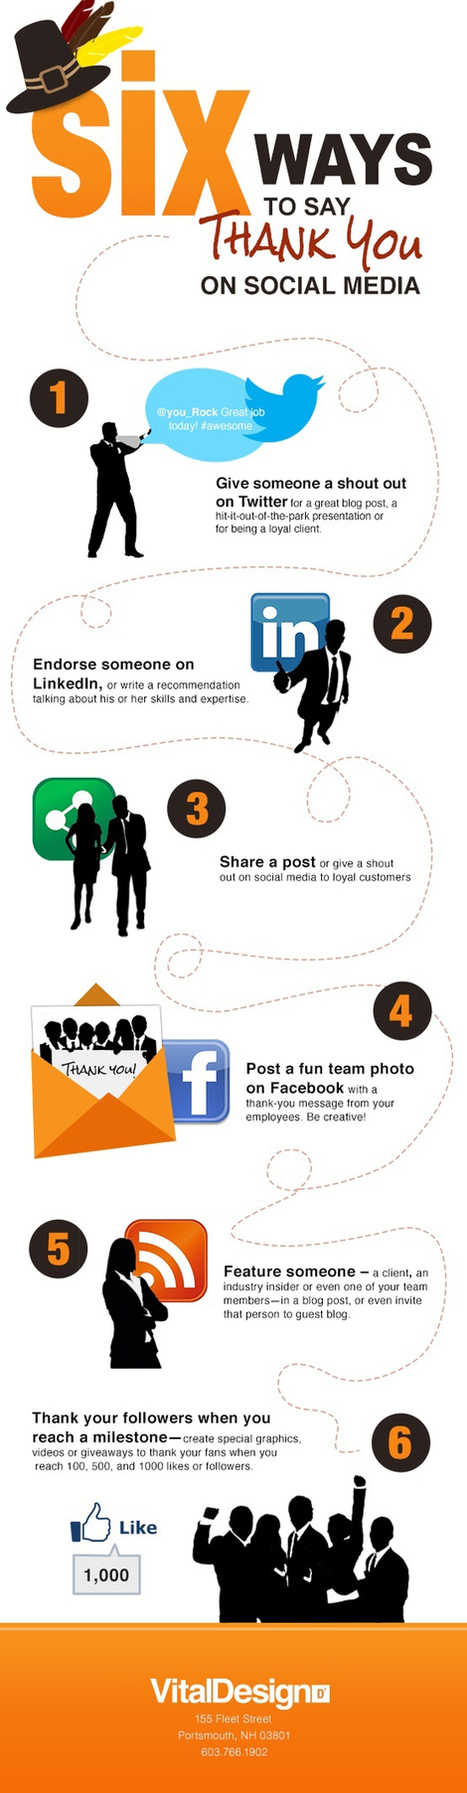 6 Ways To Say Thank You On Social Media [Infographic] | The Twinkie Awards | Scoop.it